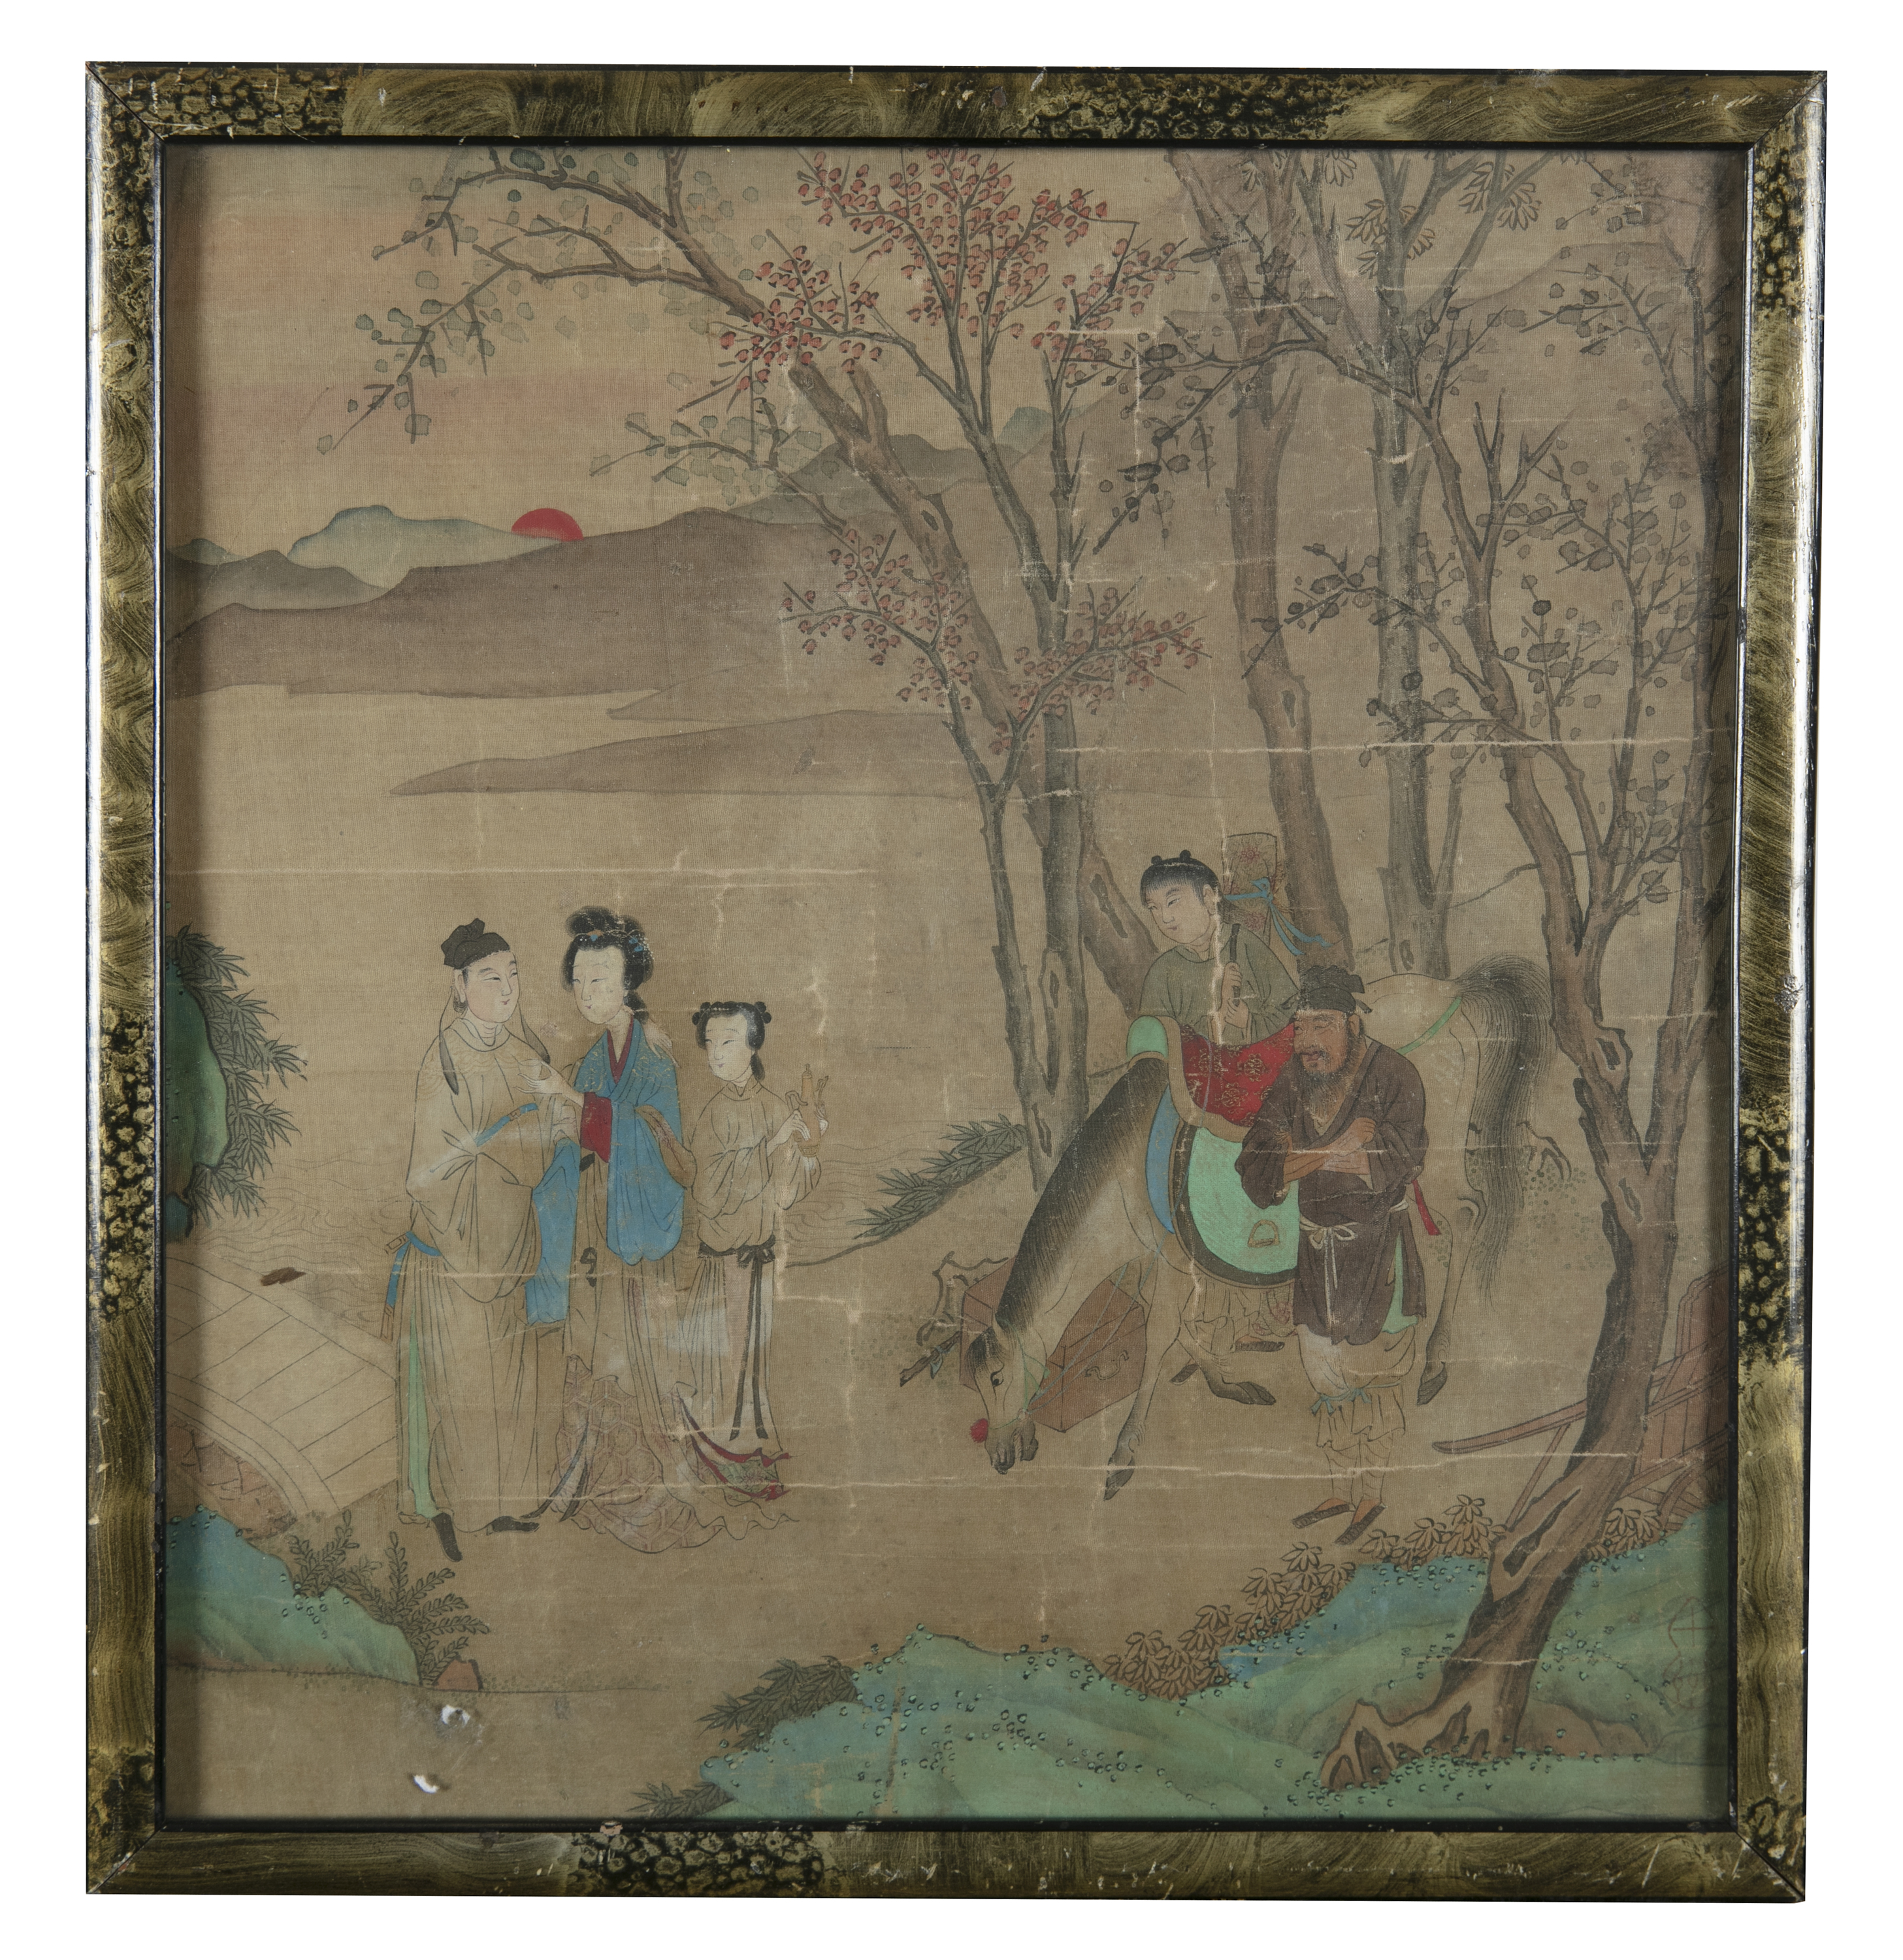 CHINESE SCHOOL, SEAL OF QIU YING 仇英 (1494-1552) Lady and attendants in a landscape at dawn - Image 5 of 10